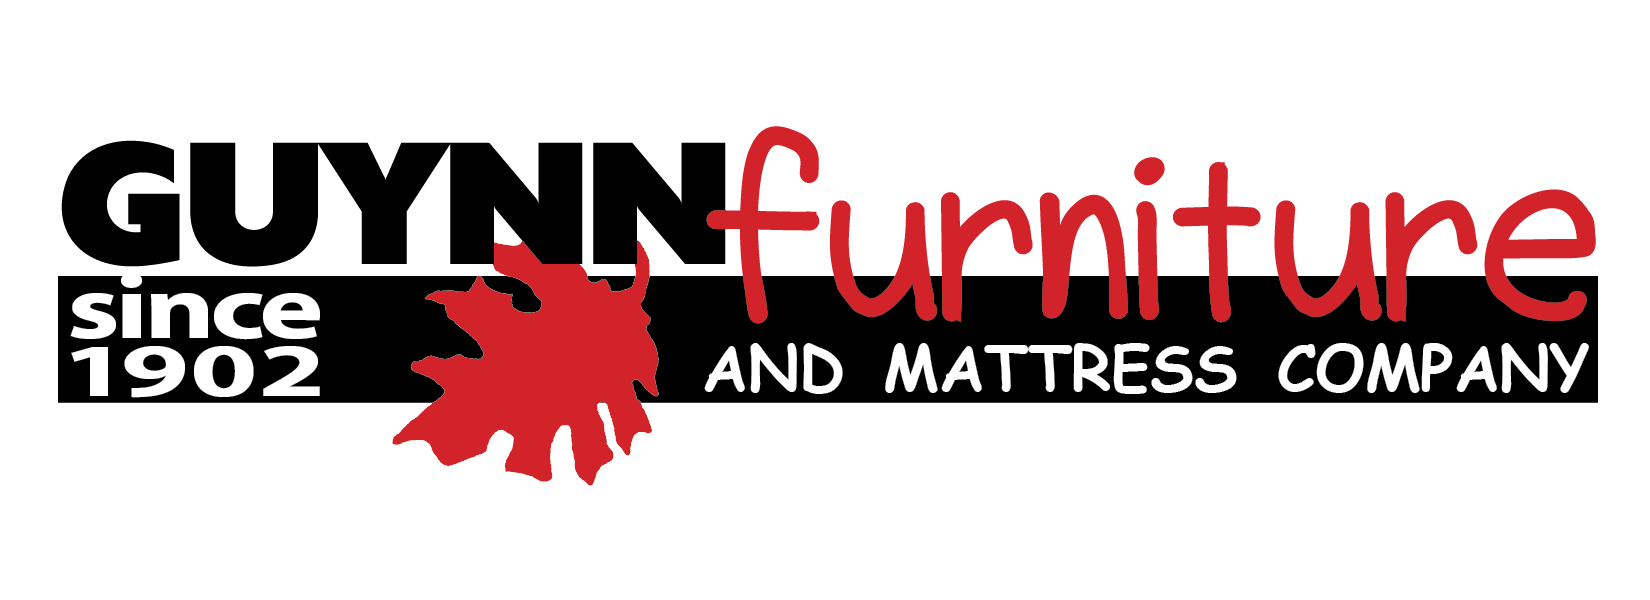 Guynn Furniture - Virginia Furniture & Mattress Store